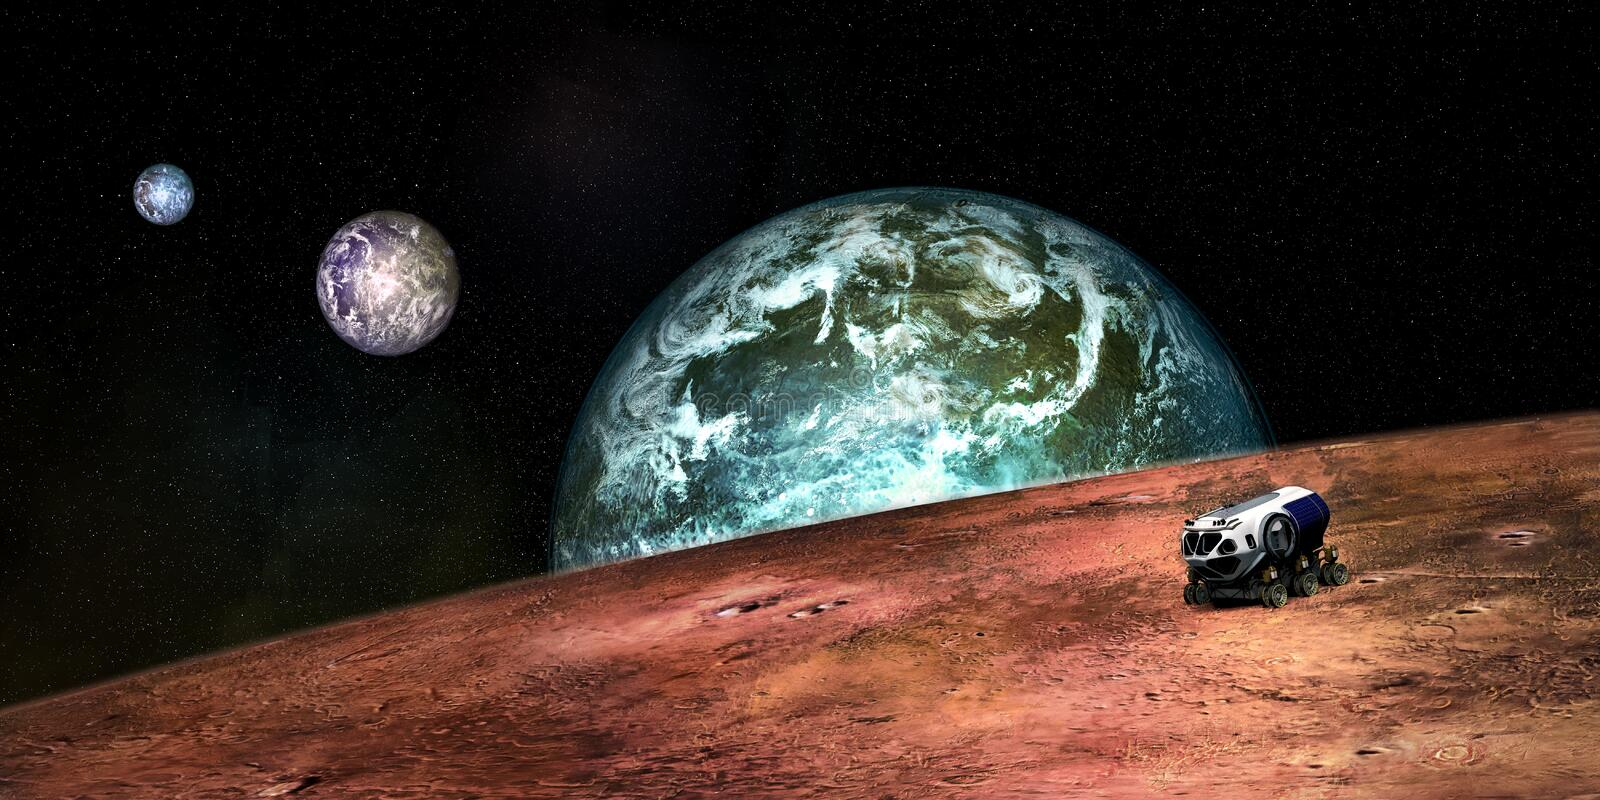 Extremely detailed and realistic high resolution 3D image of a an Exoplanet with a Space Exploration Vehicle. Shot from outer spac. E. Elements of this image are stock photography